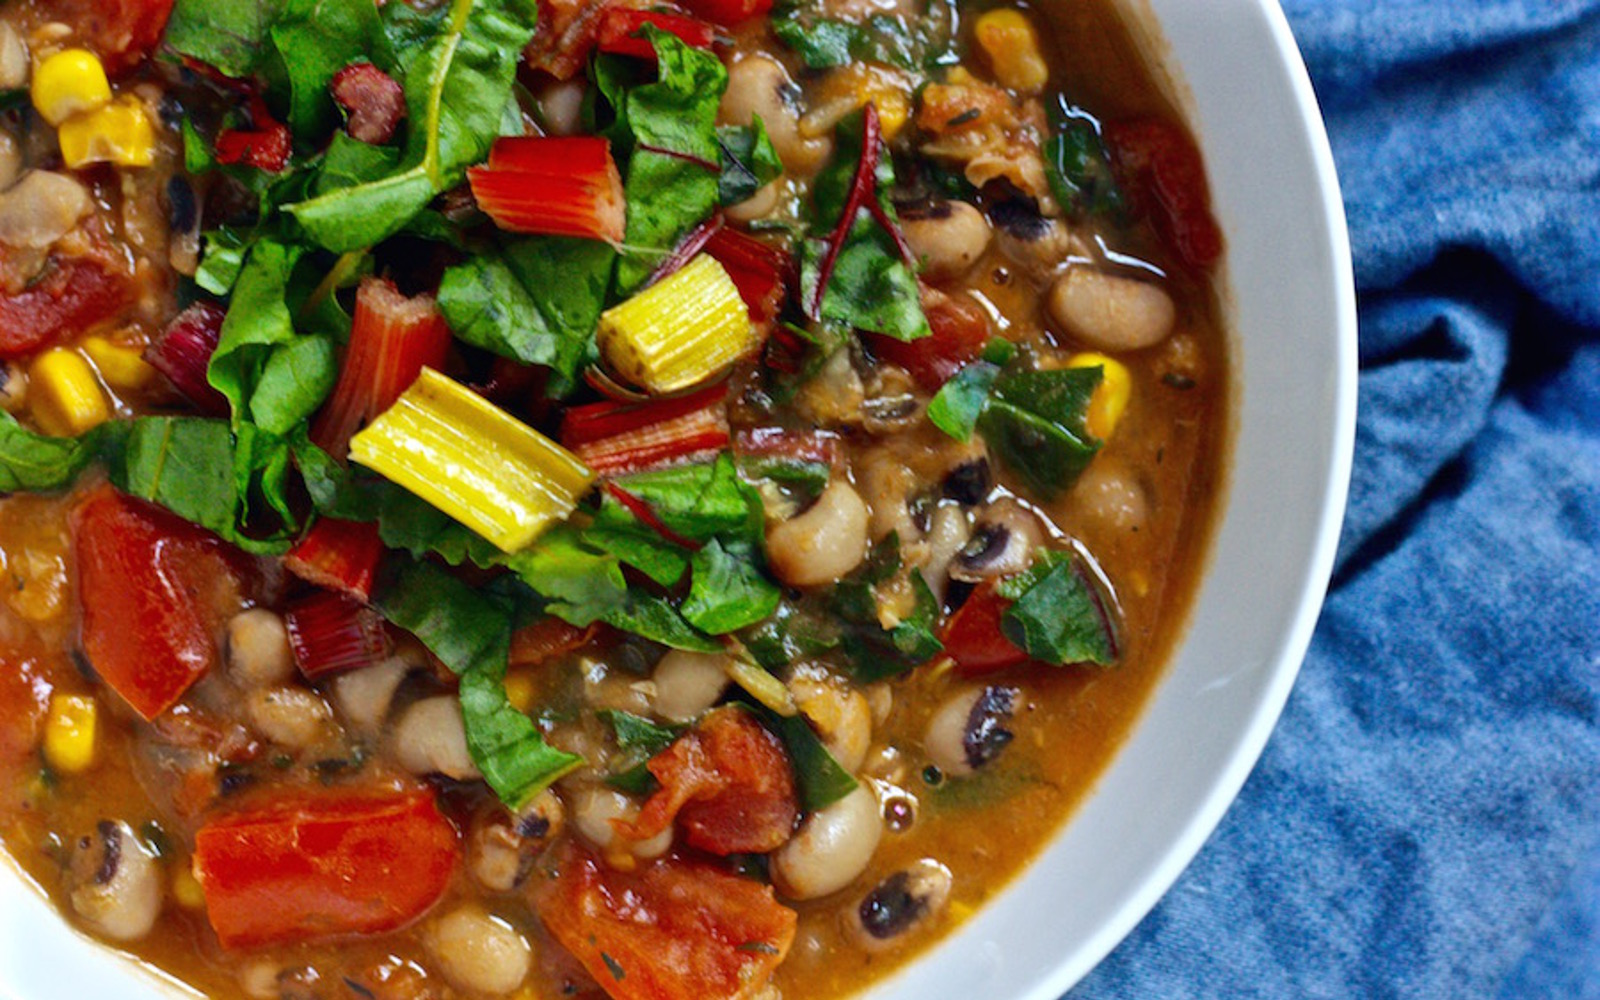 Southern Sweet Potato and Black Eyed Pea Stew